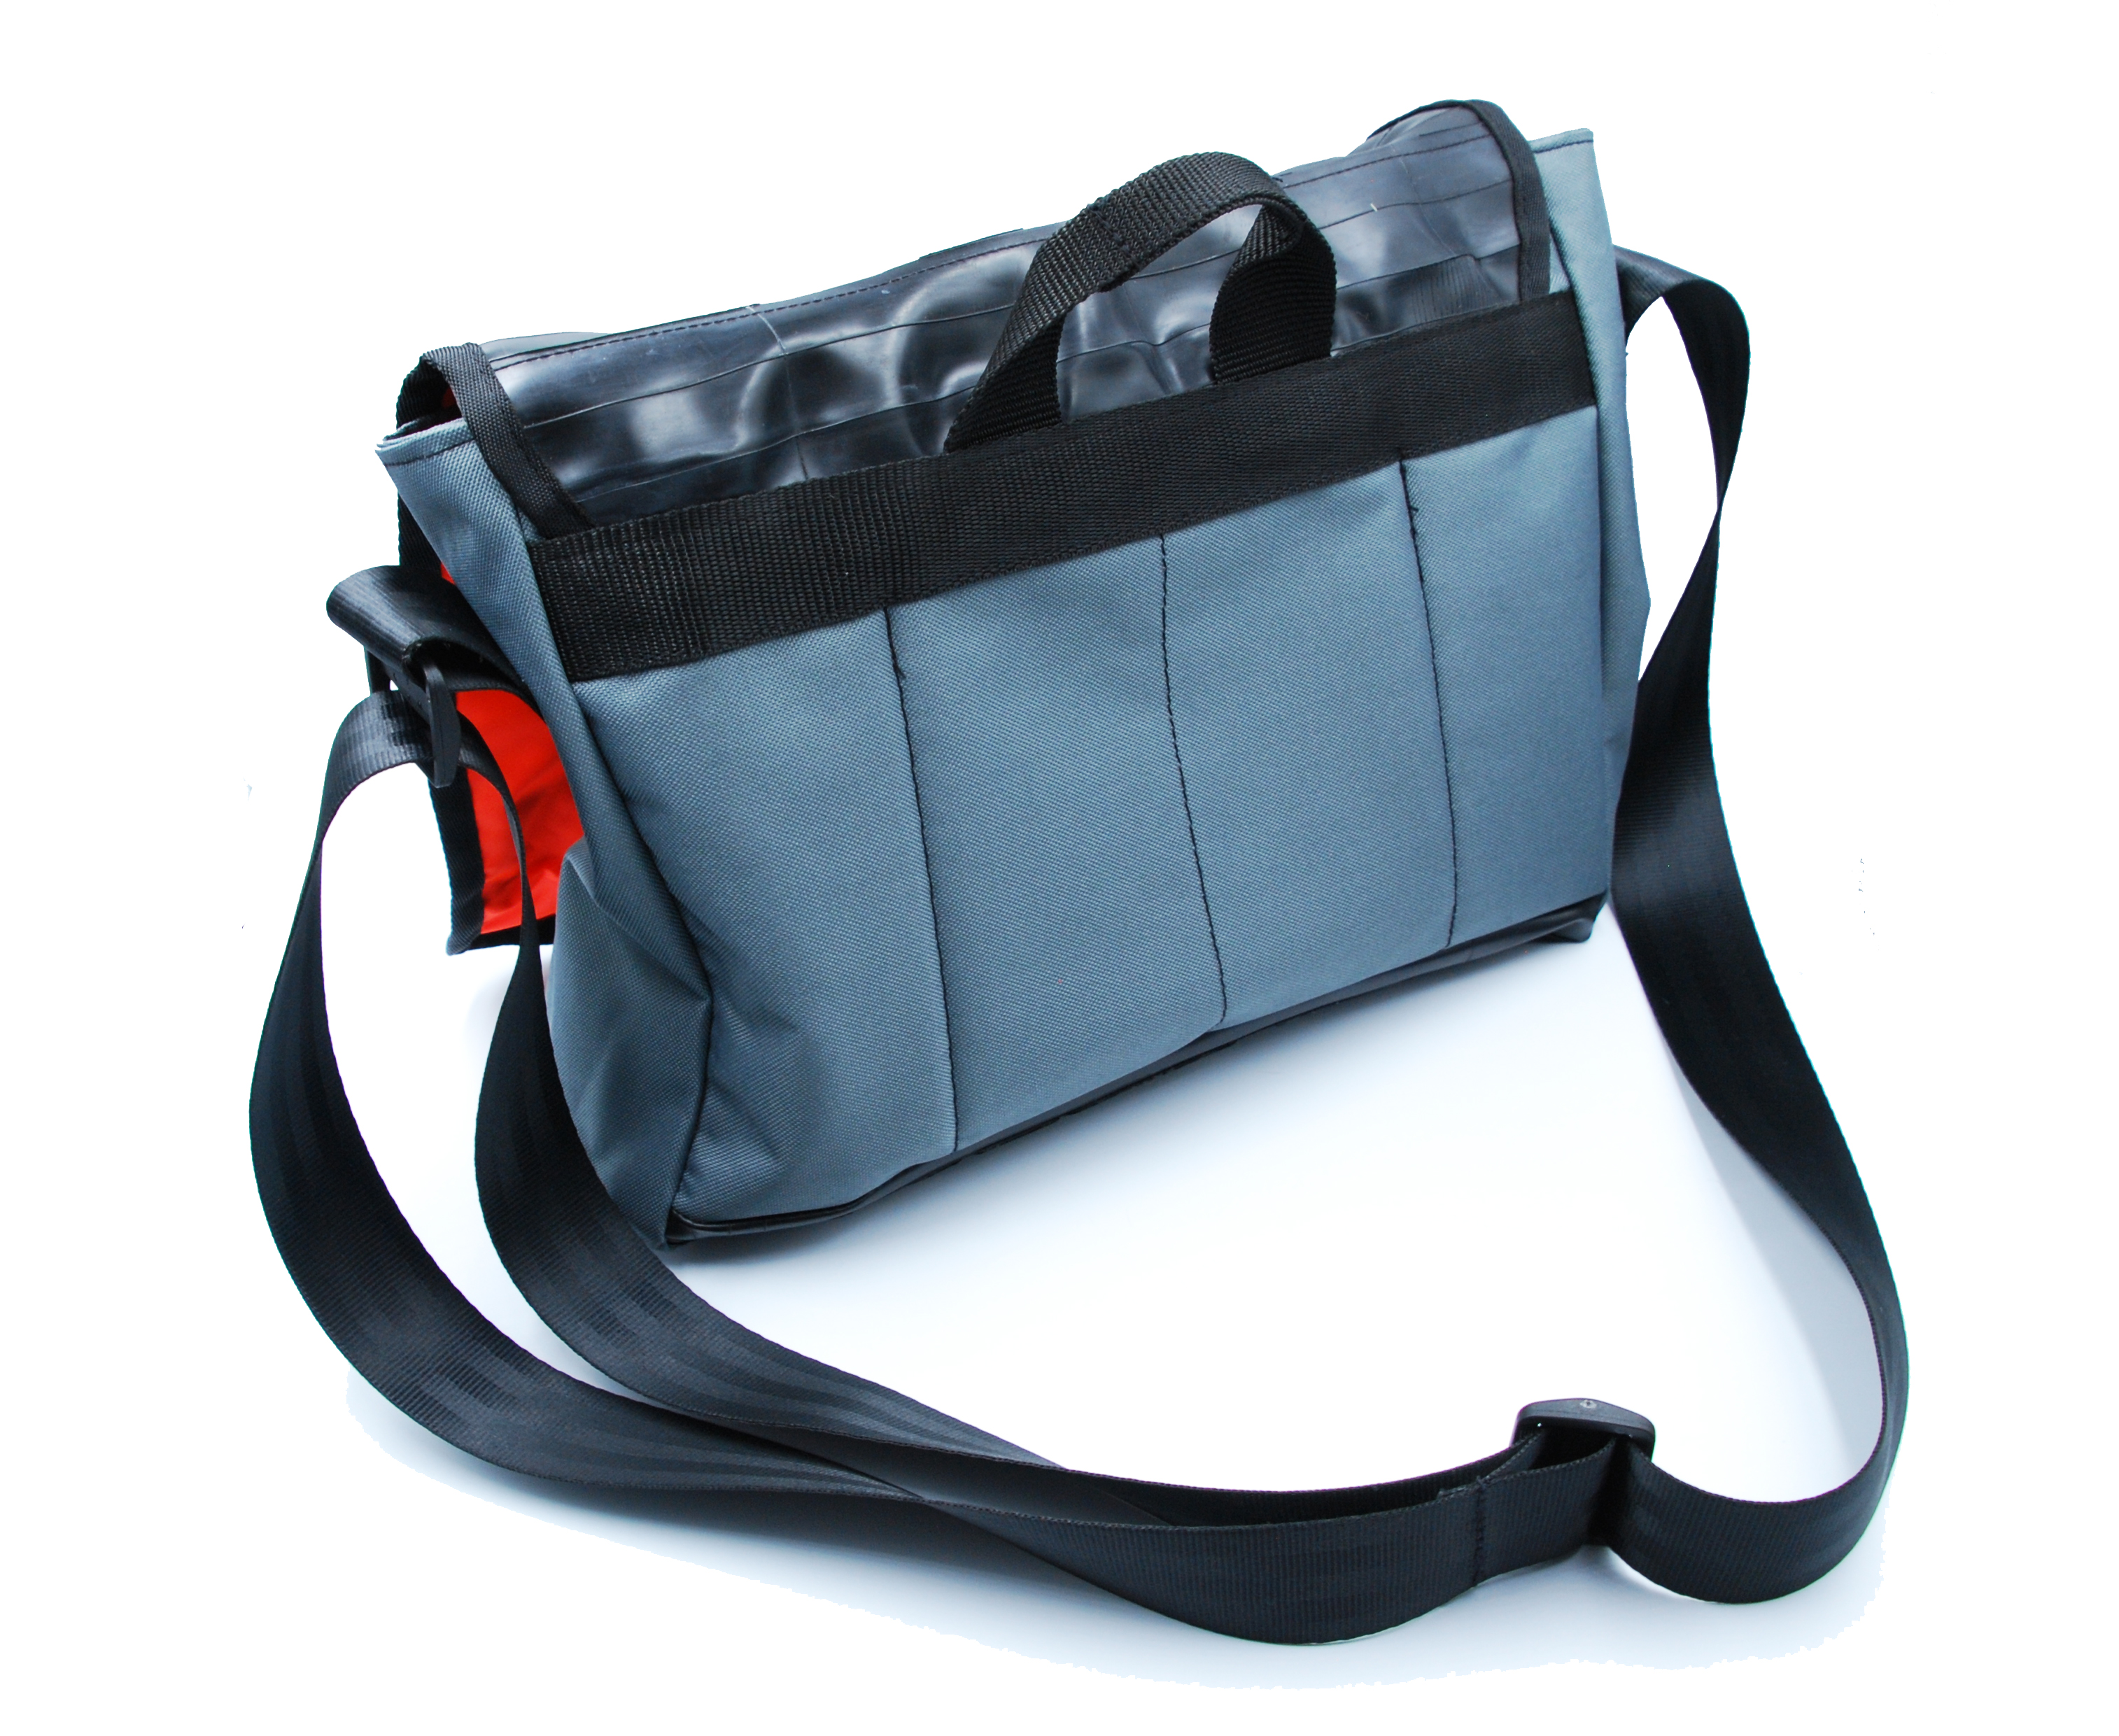 Kufika Inner Messenger Bag Made By Carradice For Cycle Of Good